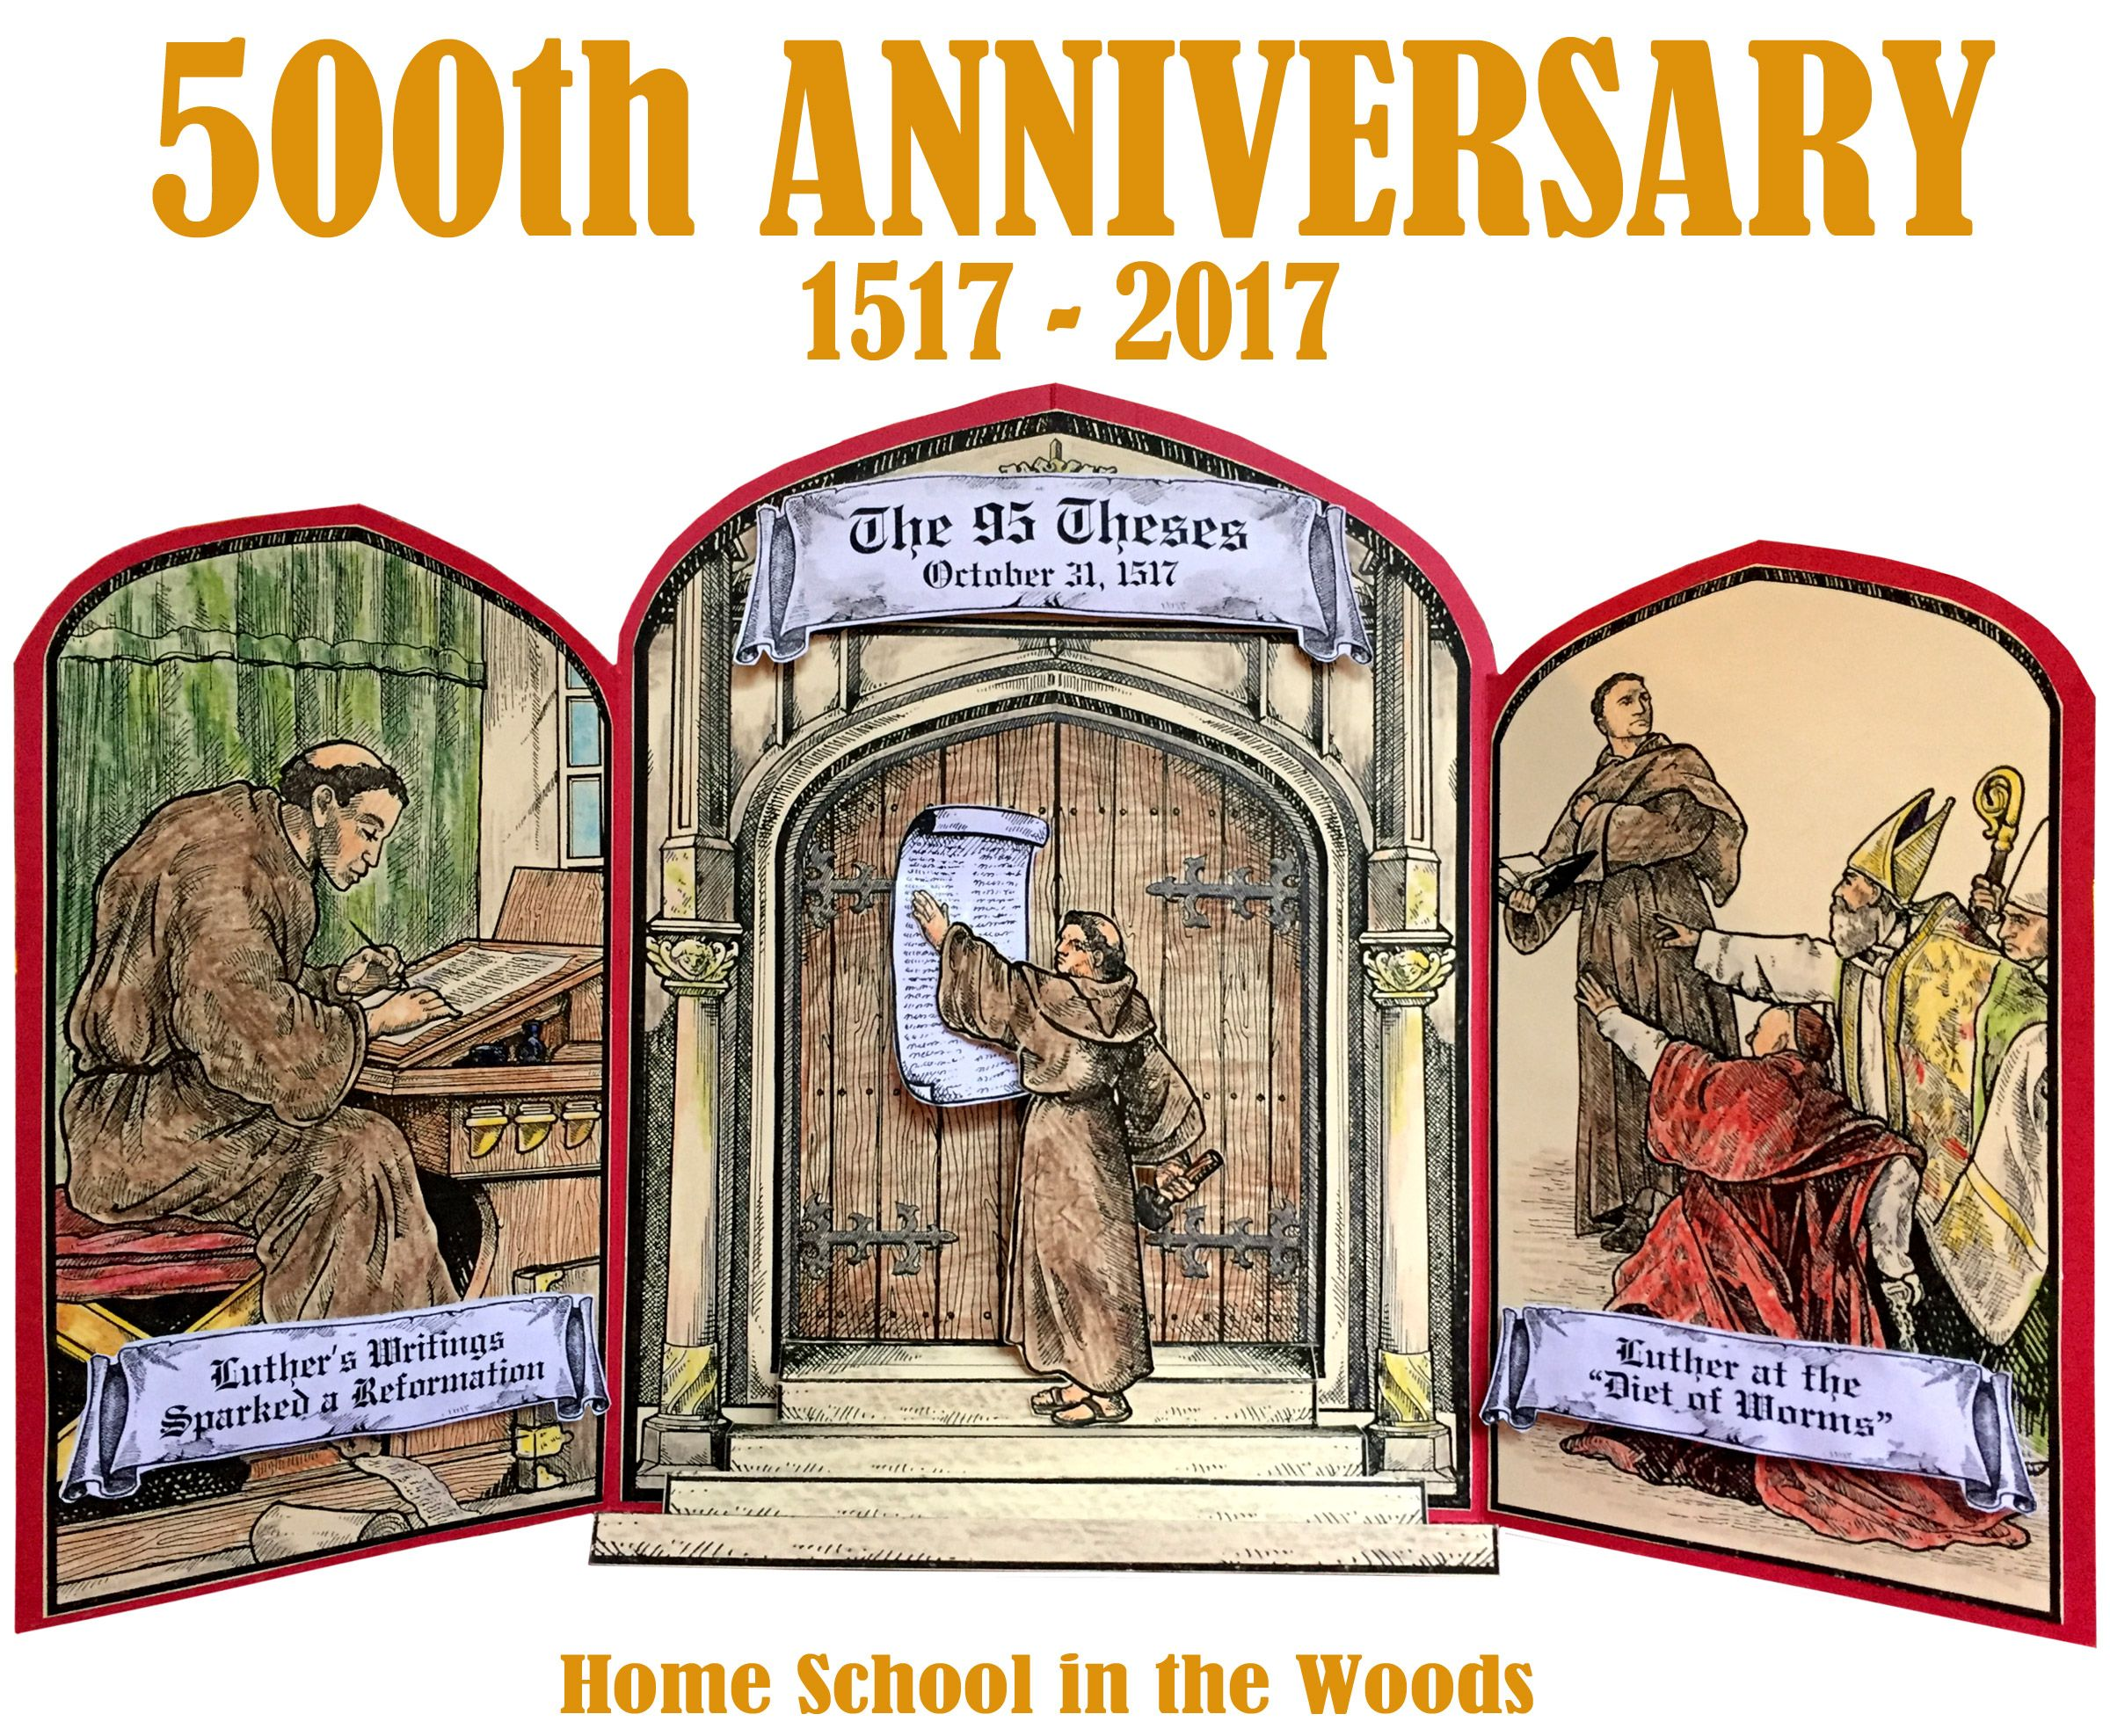 Marks The Celebration Of 500 Years Since Martin Luther Nailed His 95 Theses On The